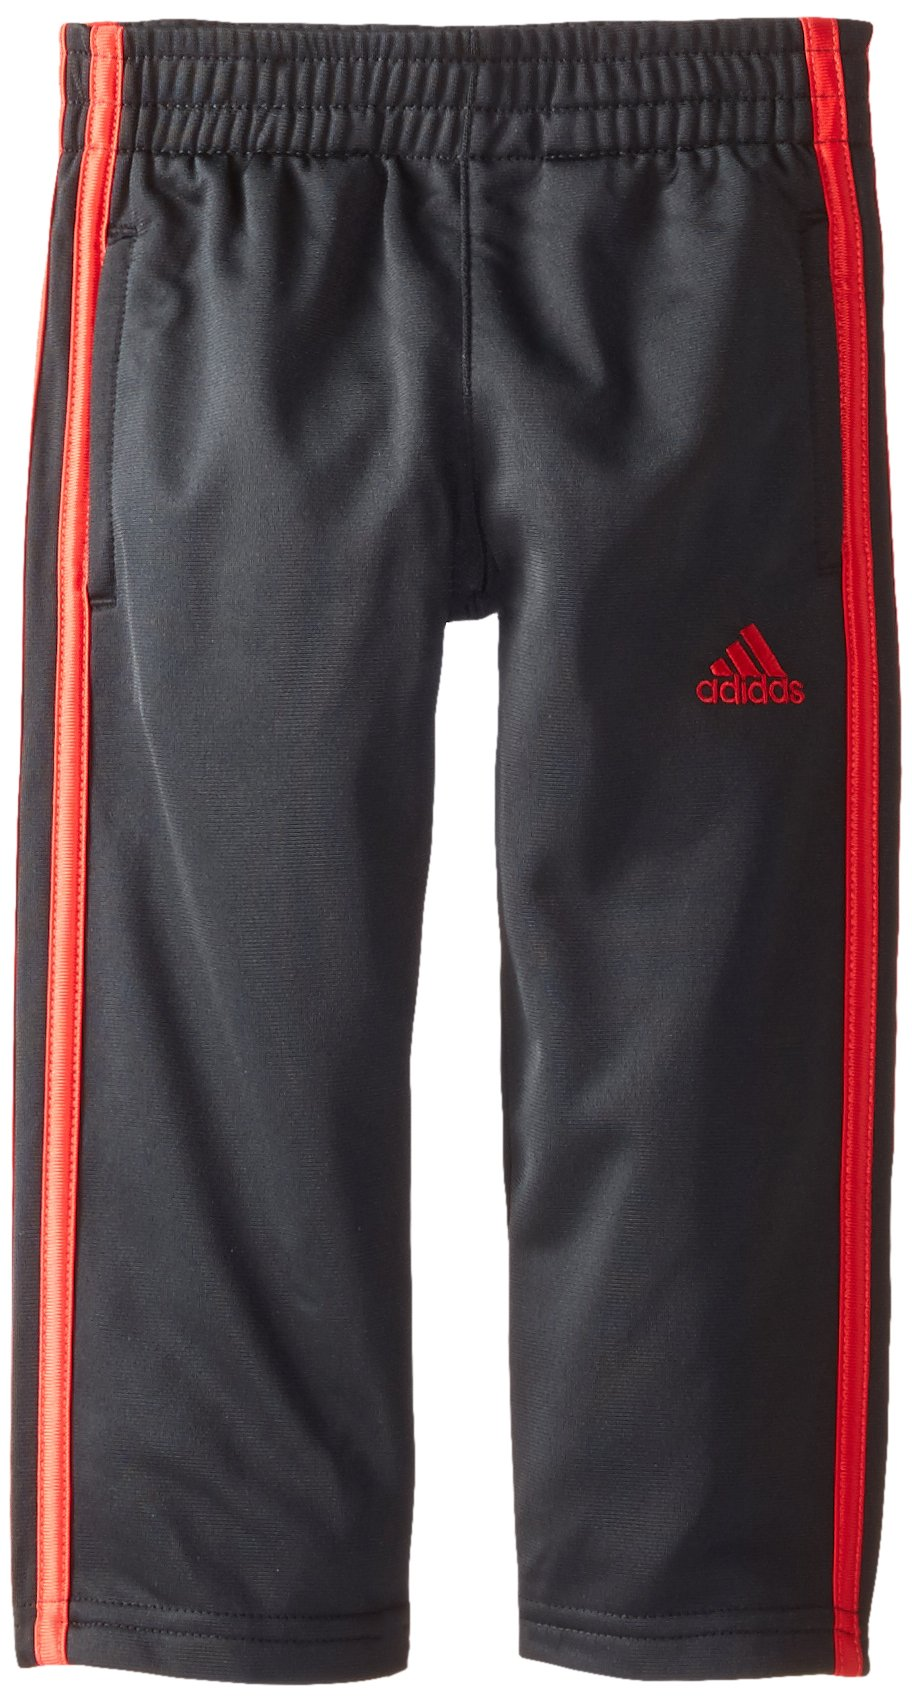 adidas Little Boys' Tricot Pant, Black/Light Scarlet, 5 by adidas